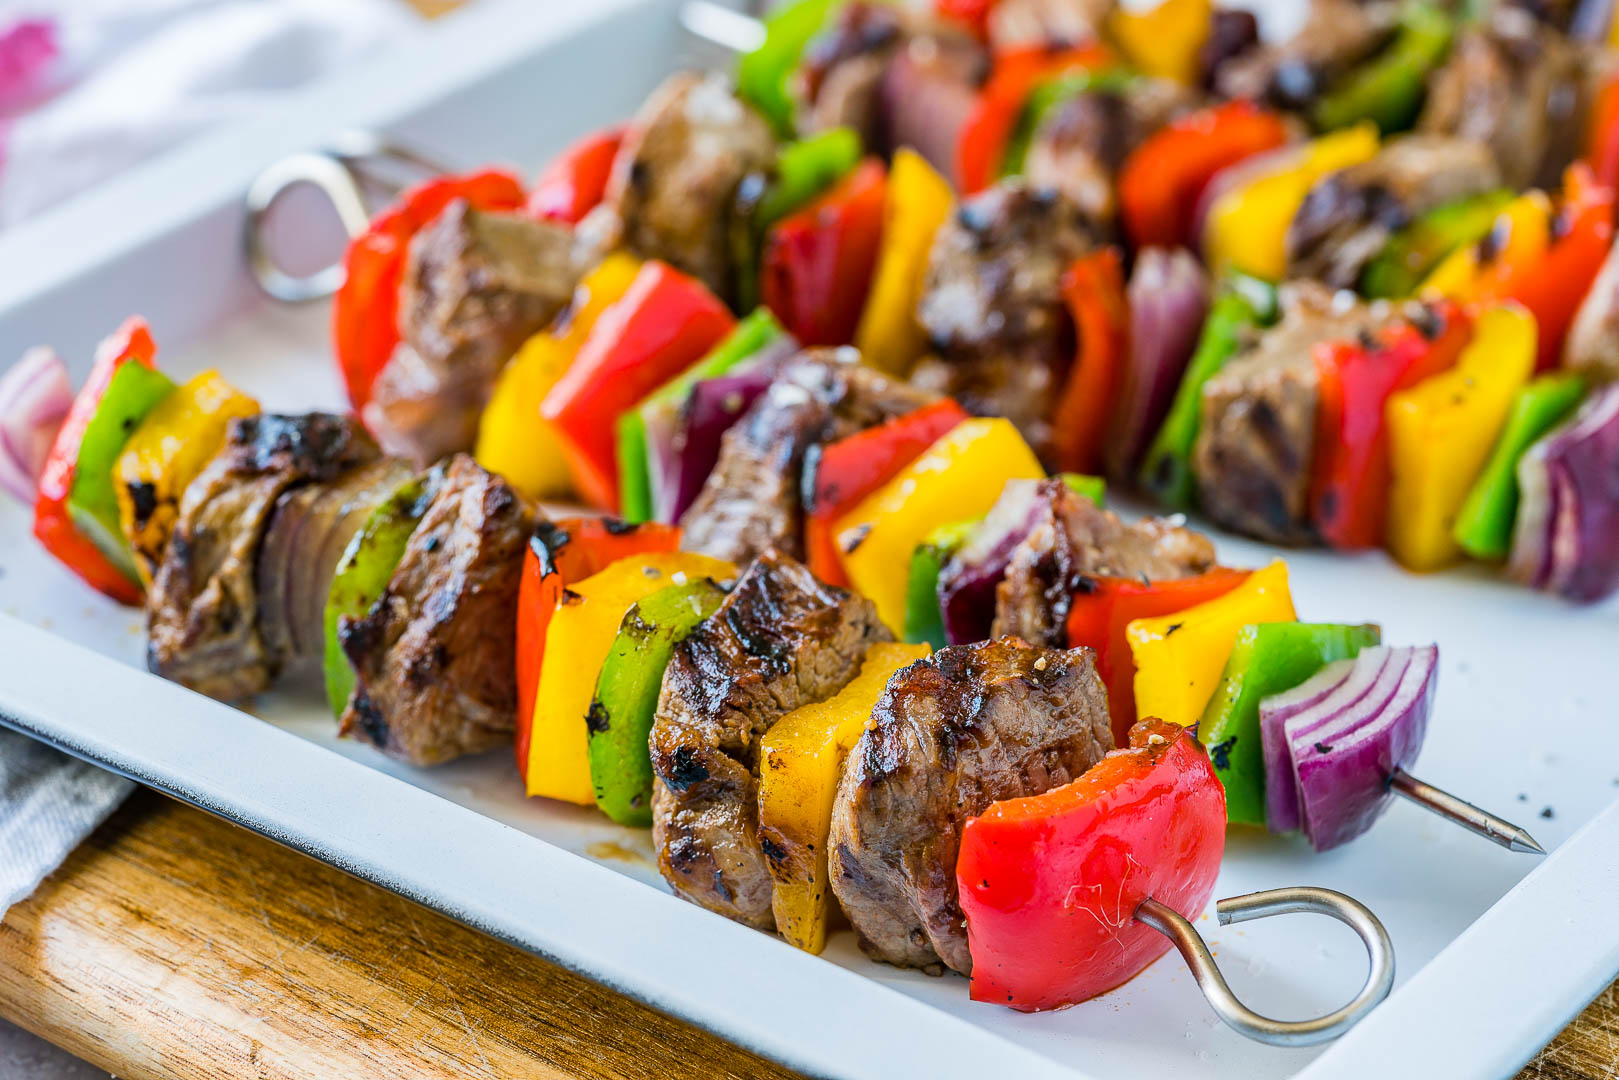 Redline BBQ Catering in Thorold was created for one purpose to bring authentic southern style bbq to the Niagara region. We offer onsite catering.